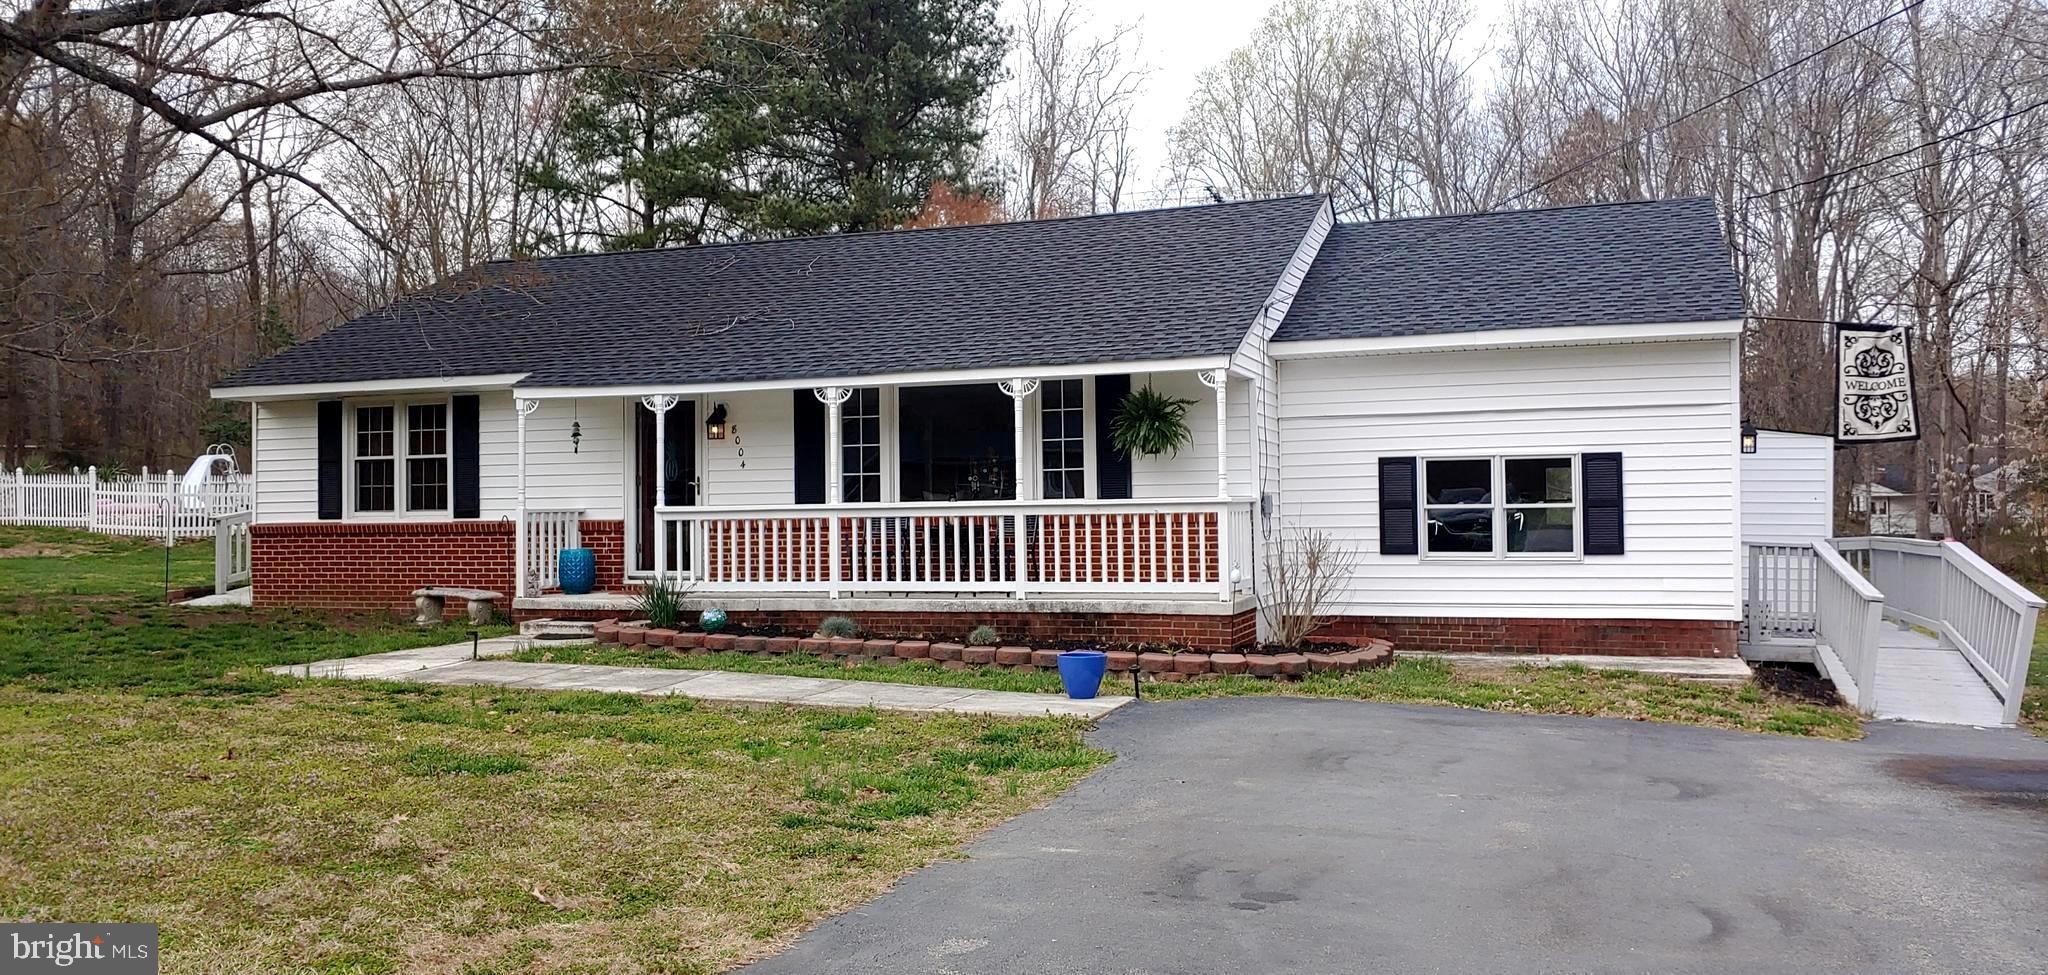 8004 TERRY DRIVE, PORT TOBACCO, MD 20677